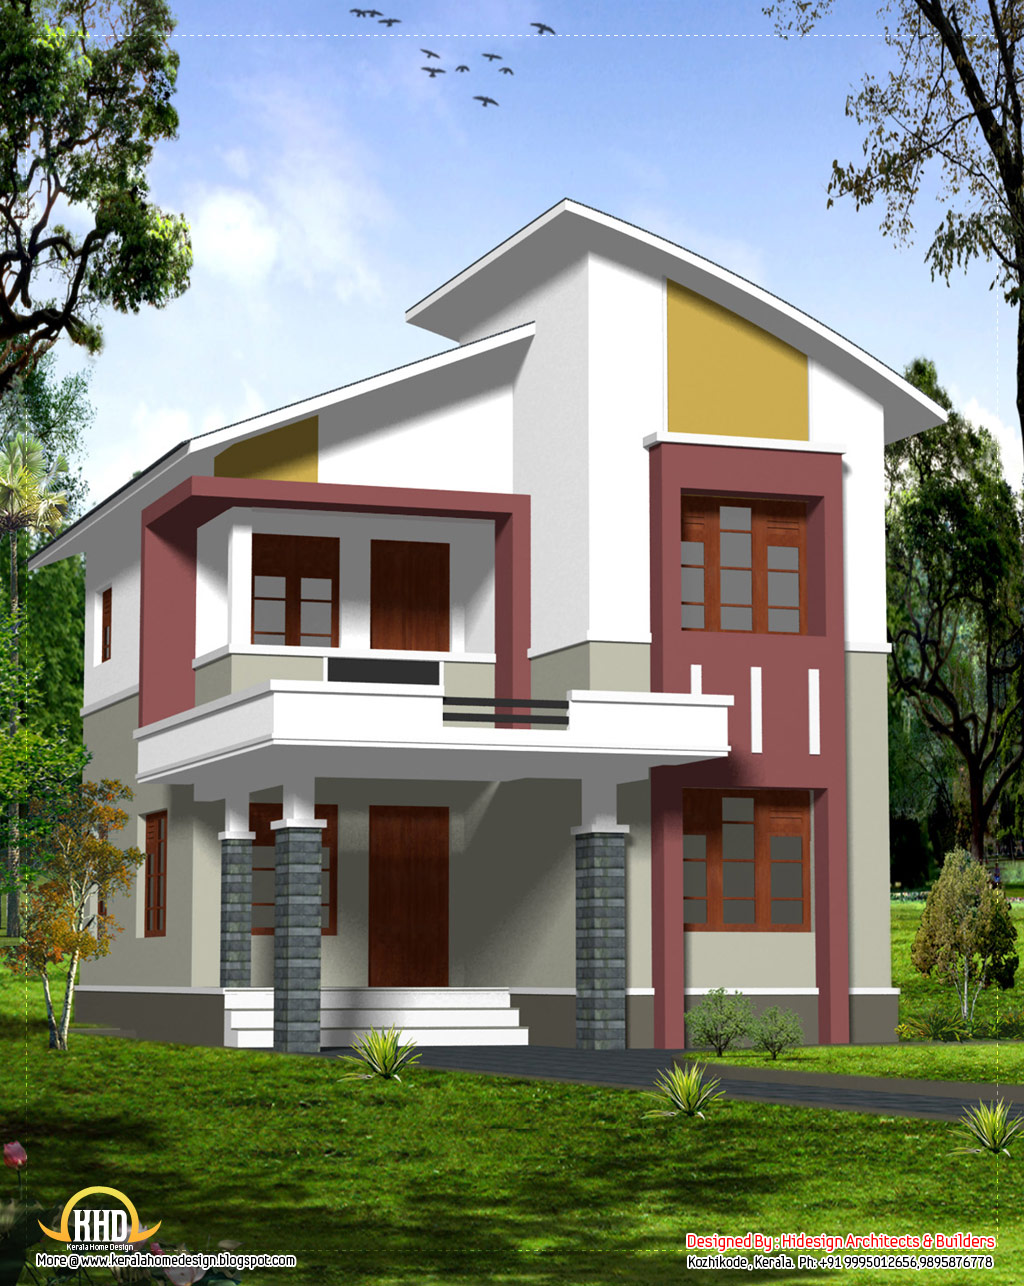 Budget home design 2140 sq ft kerala home design and for Customize house